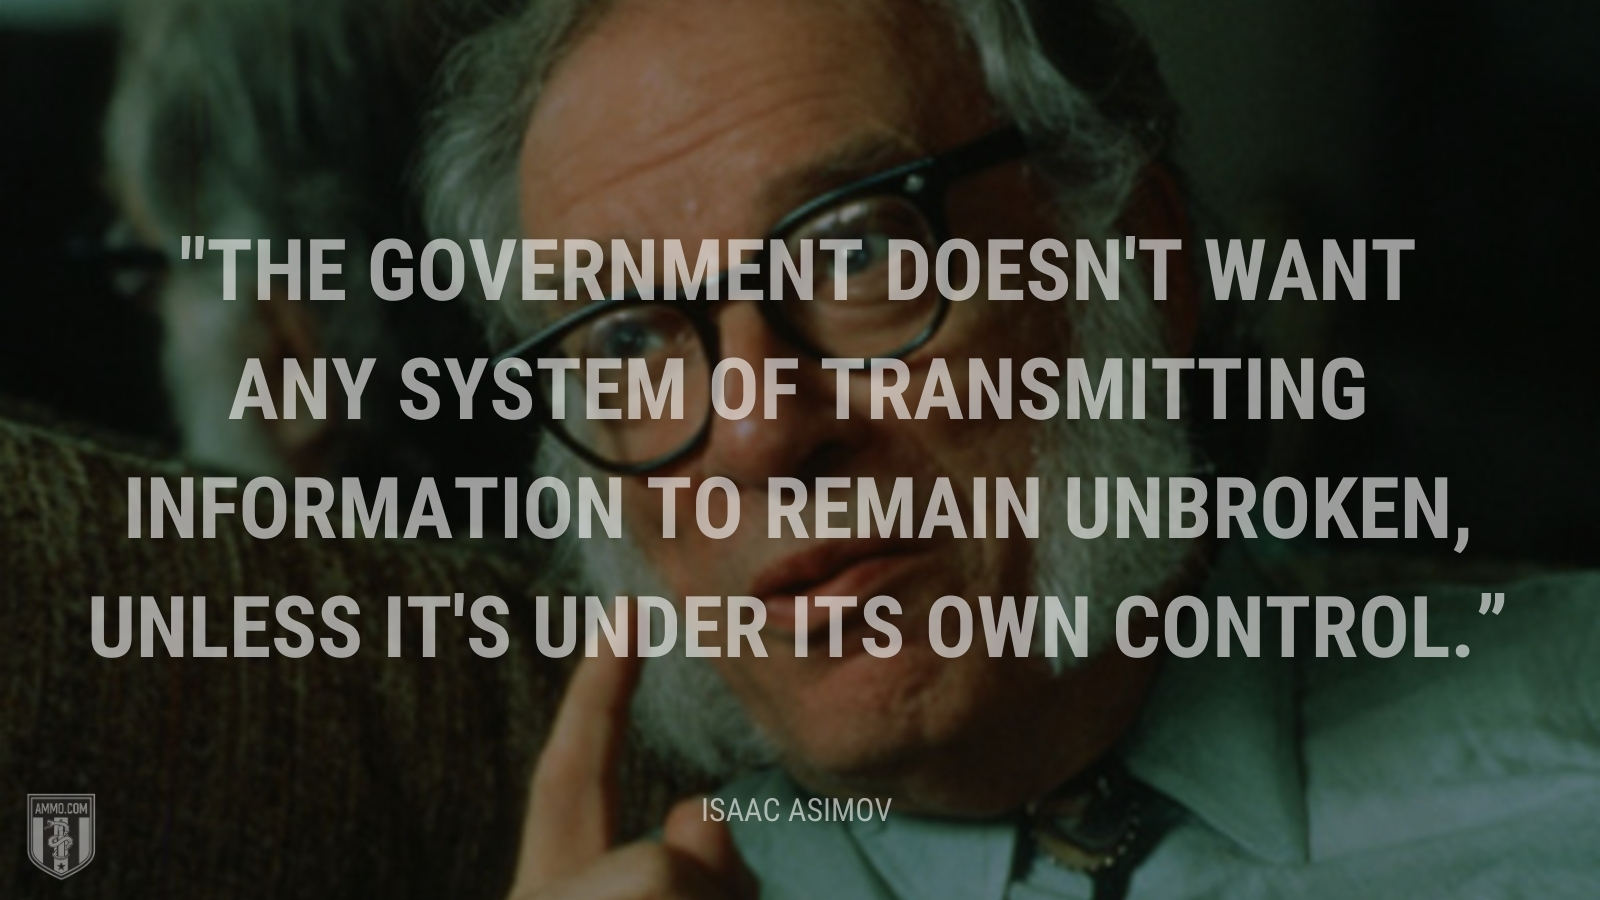 """""""The government doesn't want any system of transmitting information to remain unbroken, unless it's under its own control."""" - Isaac Asimov"""